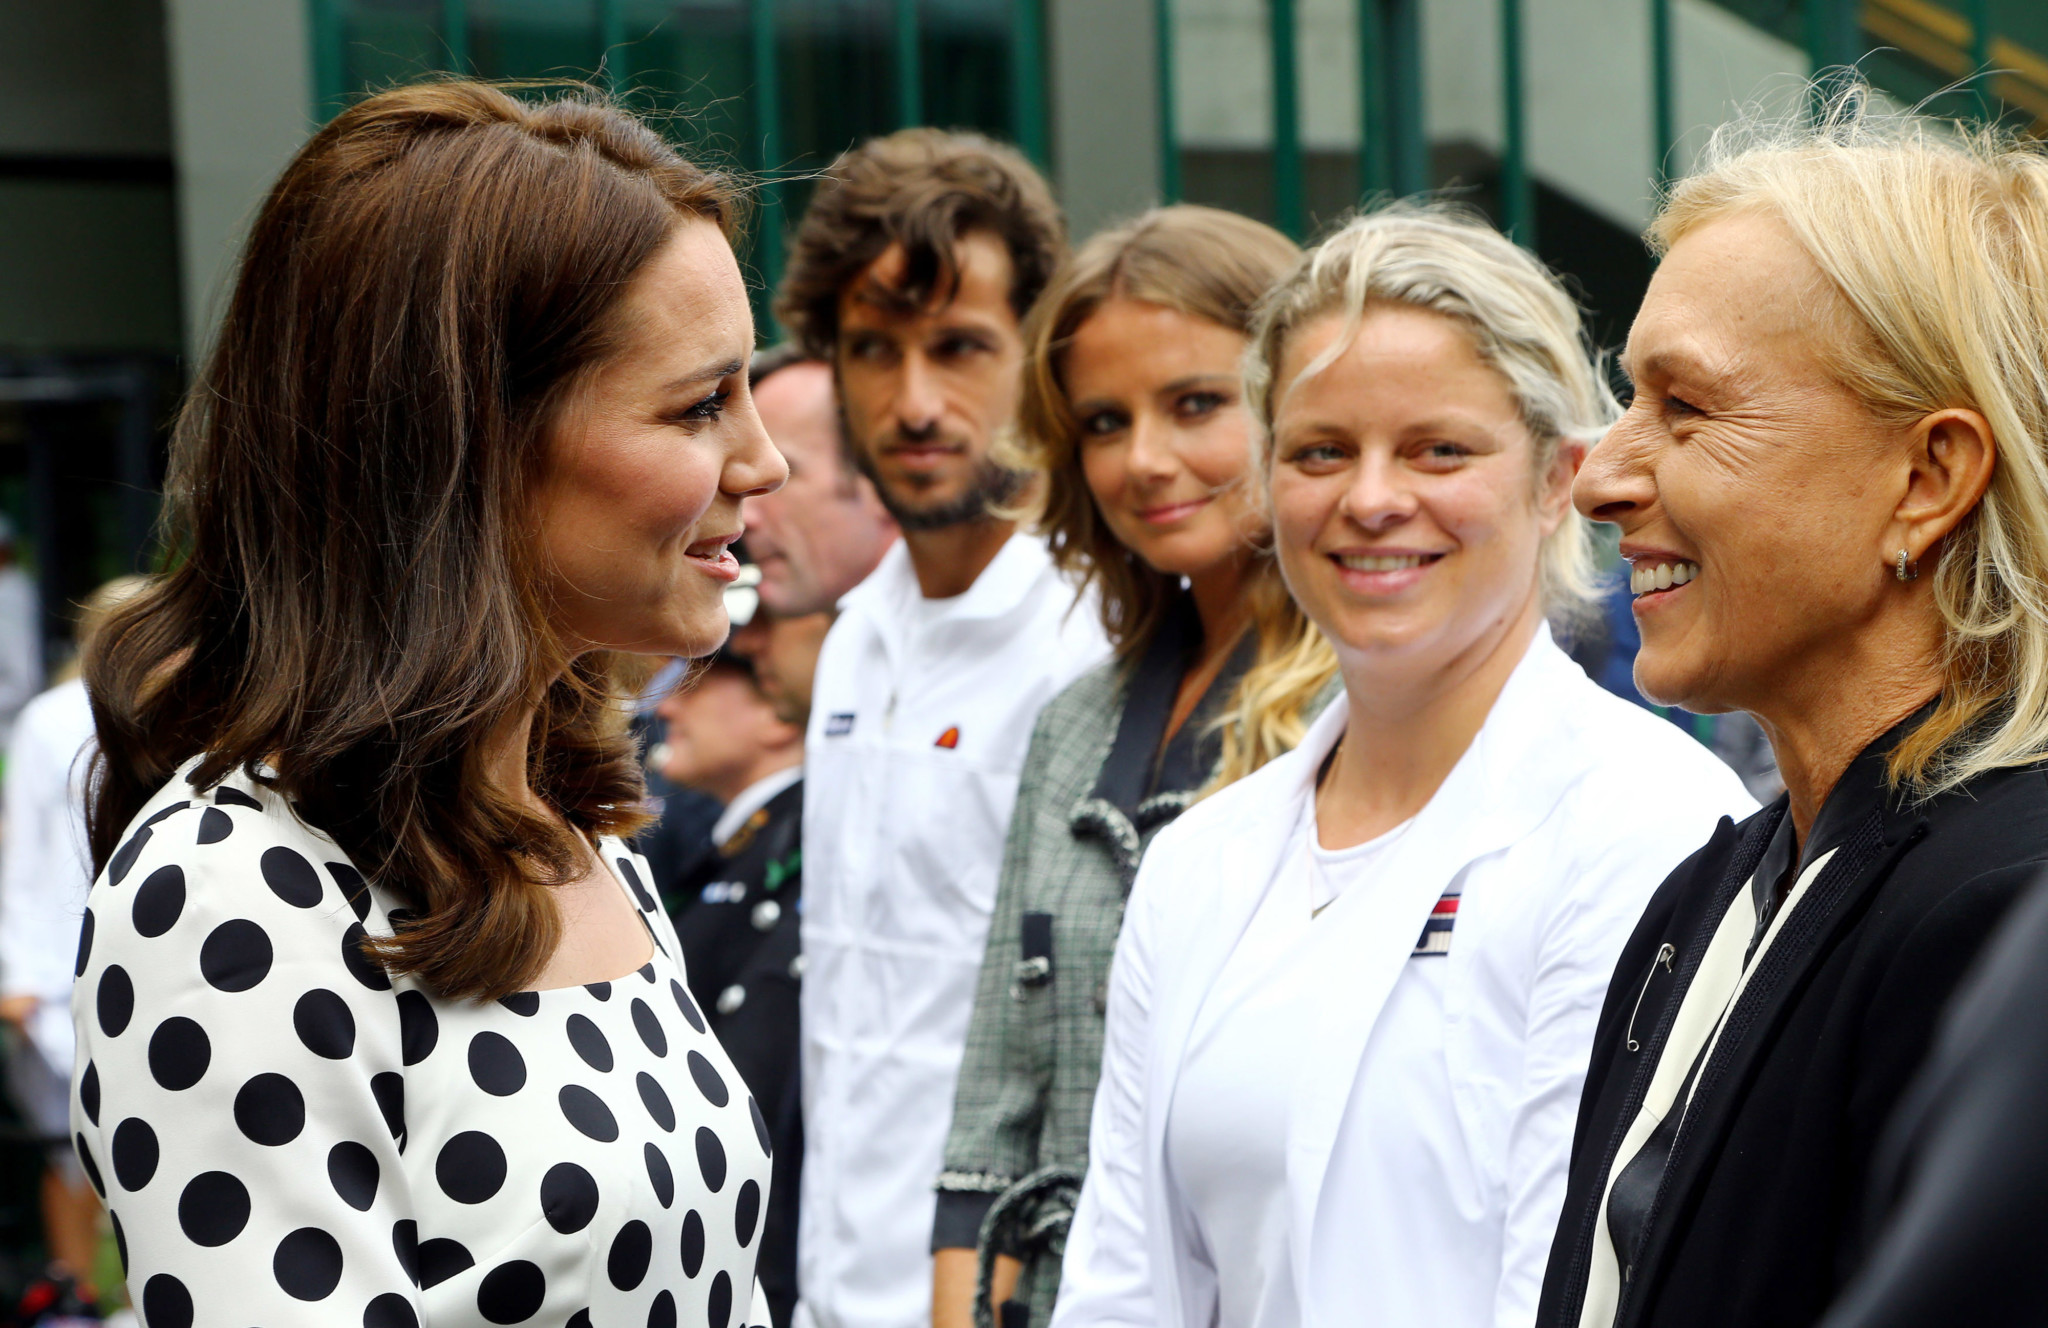 The Duchess of Cambridge speaks with Martina Navratilova (right) on day one of the Wimbledon Championships.  (Photo by Gareth Fuller - WPA Pool/Getty Images)